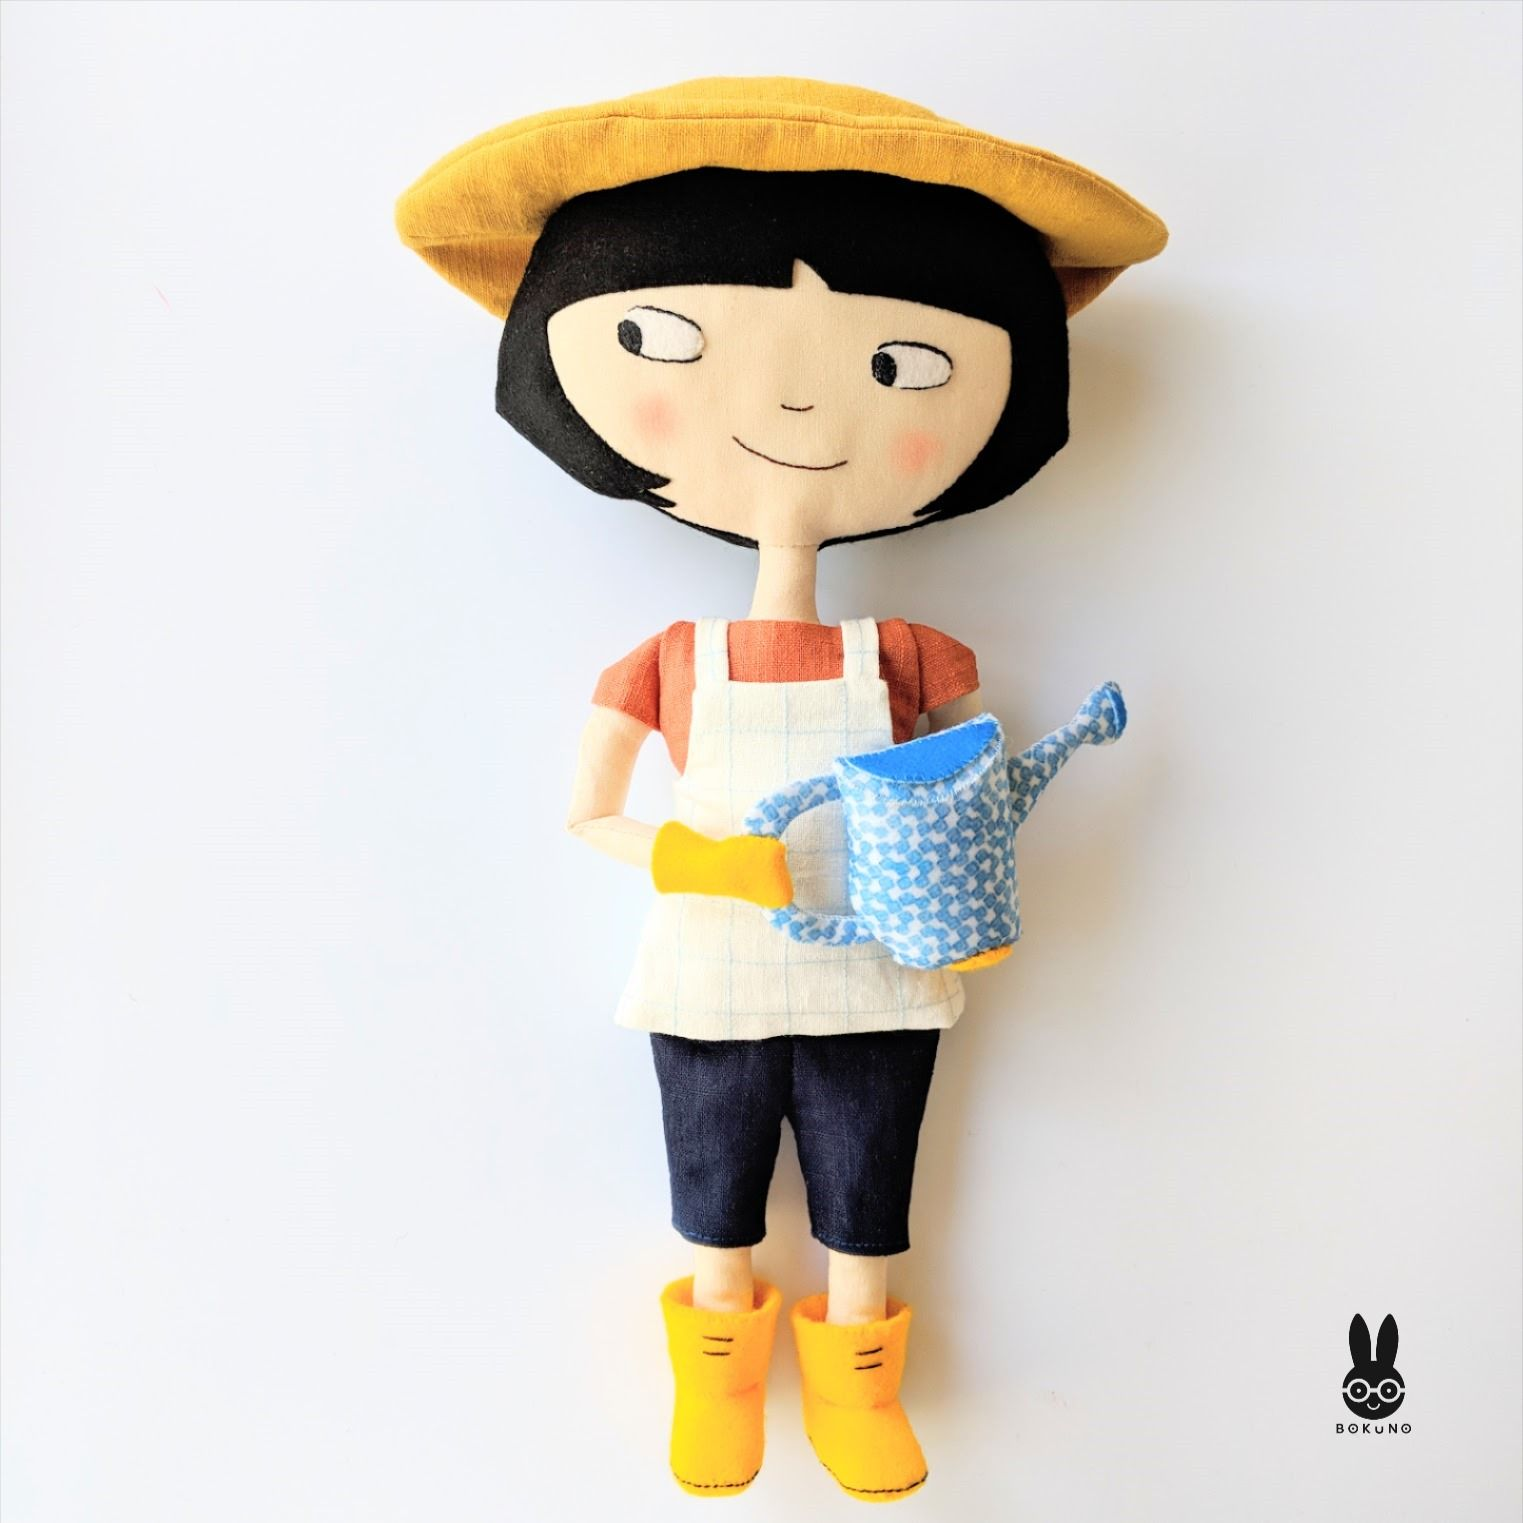 BOKUNO Can Create Bespoke Doll For You. For Enquiry